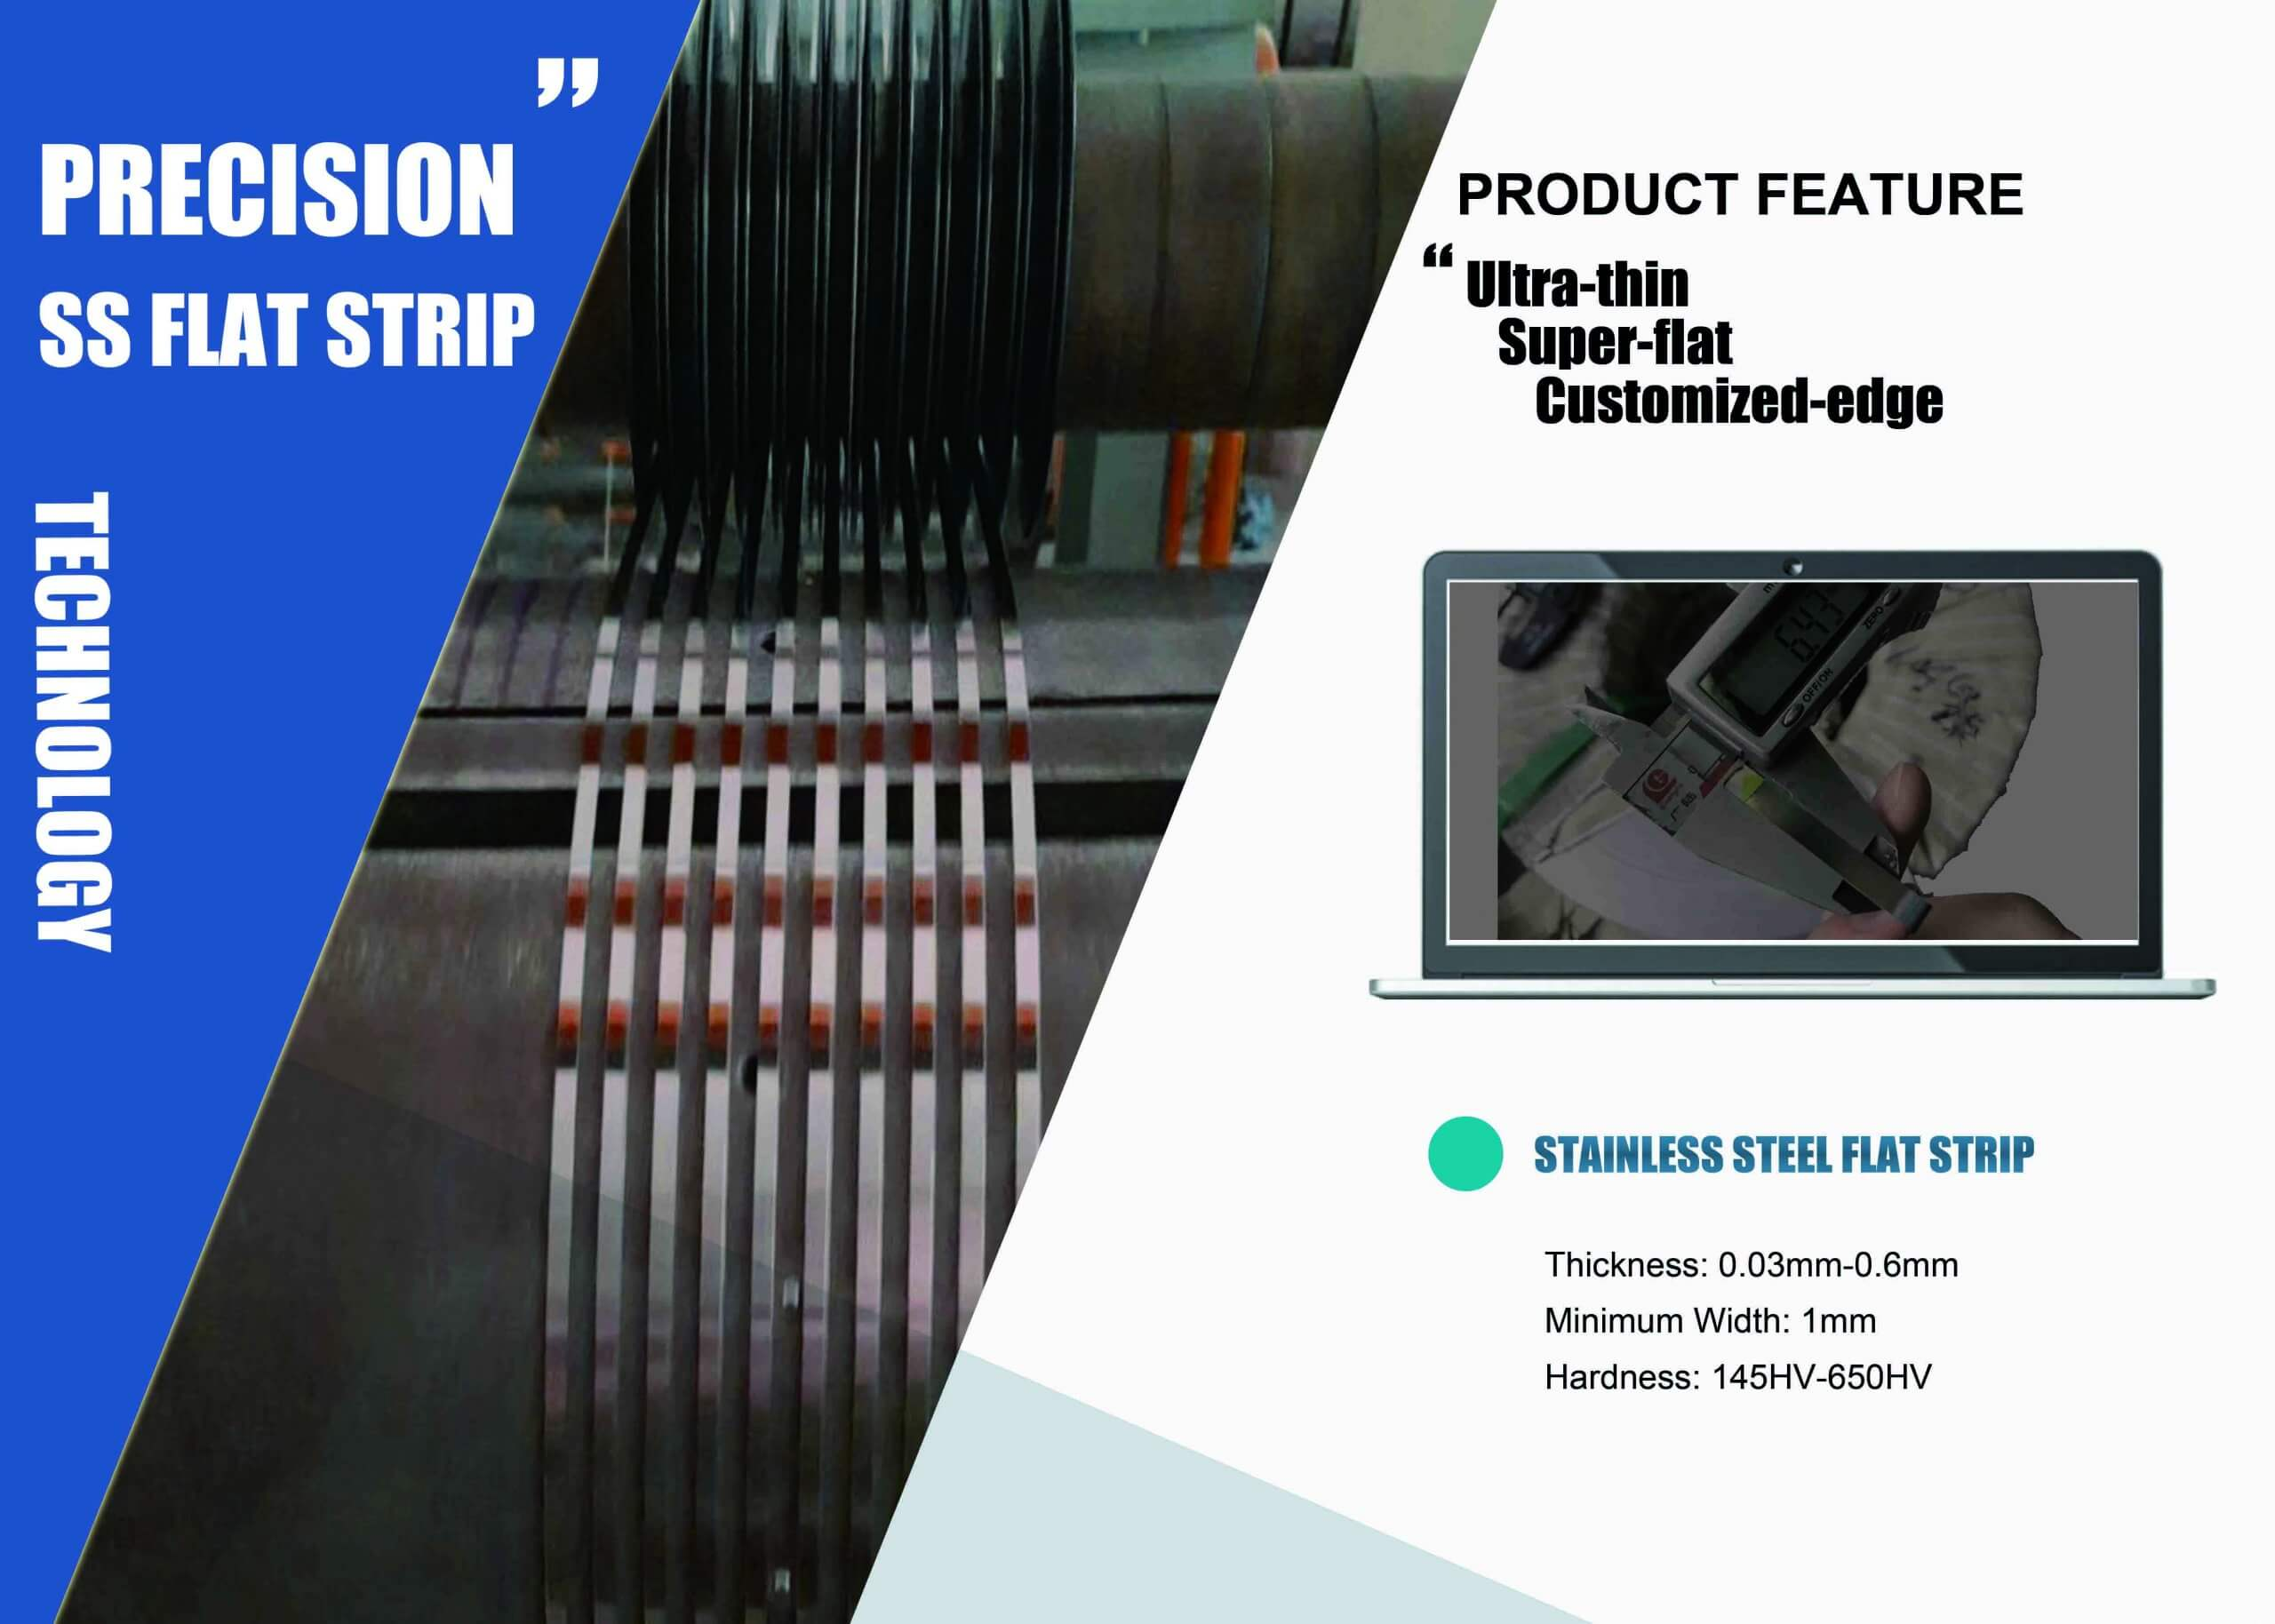 Stainless-Steel-Flat-Strips-production